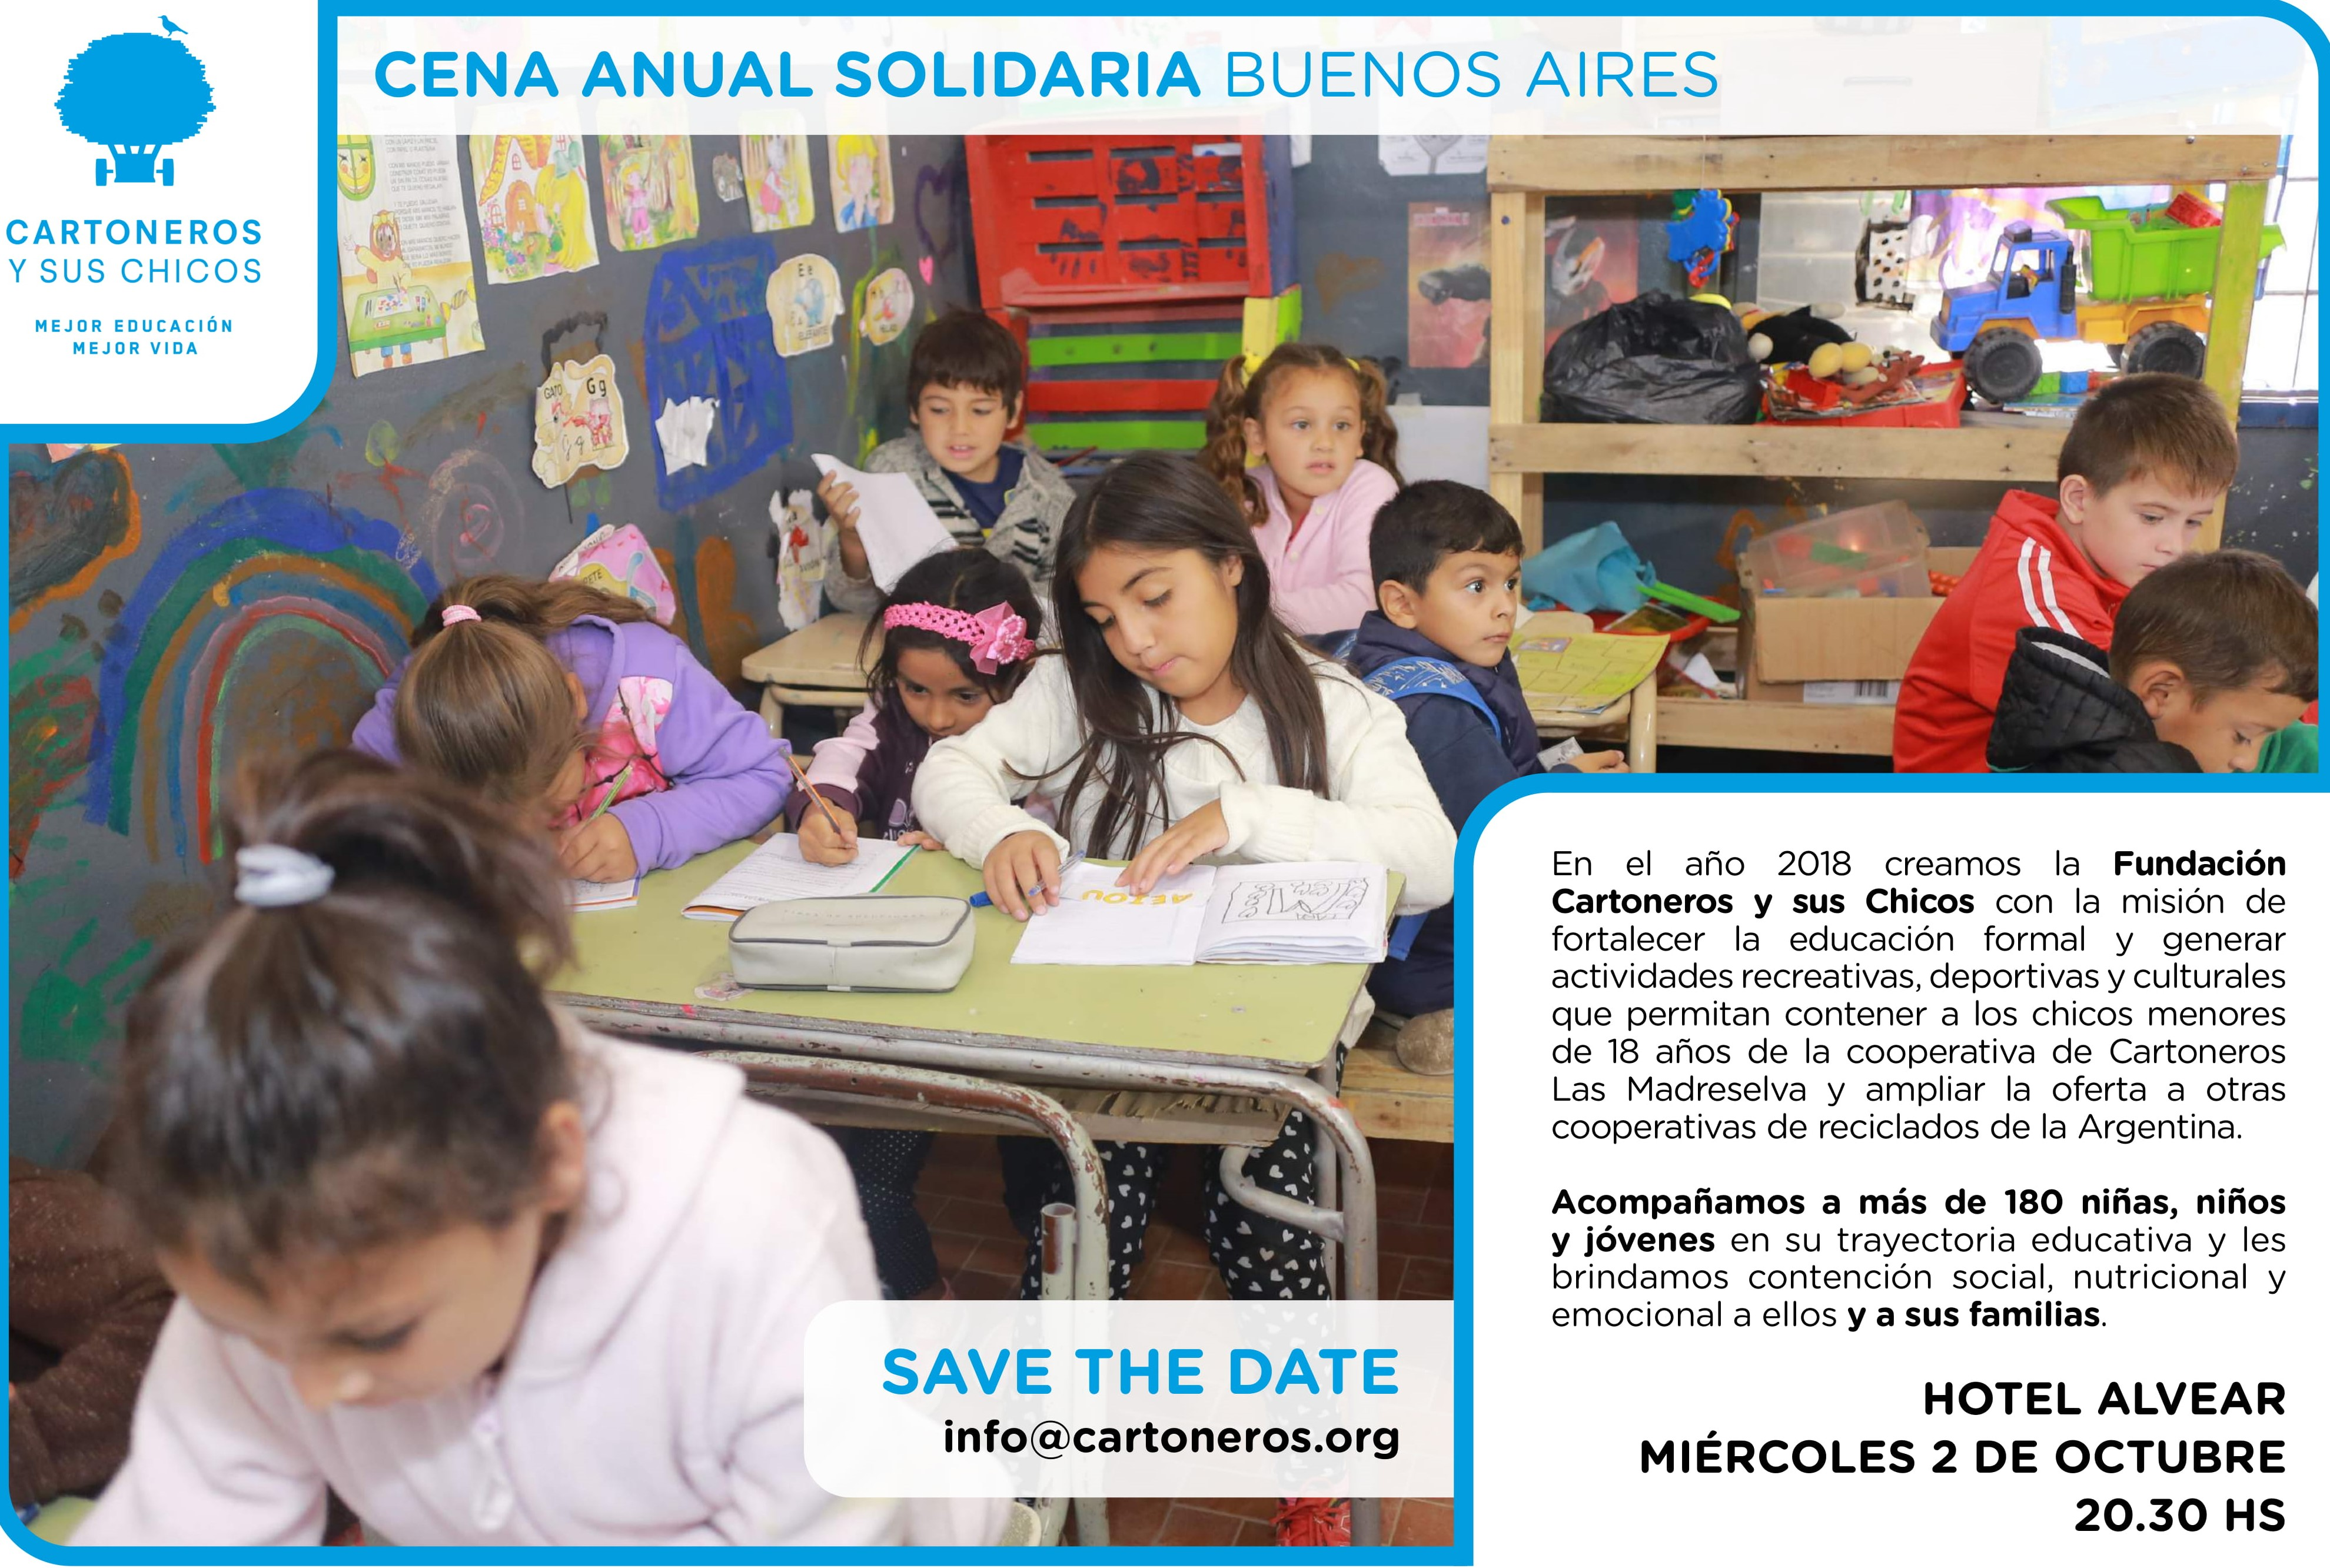 Solidarity Dinner Soon to be Held in Argentina!